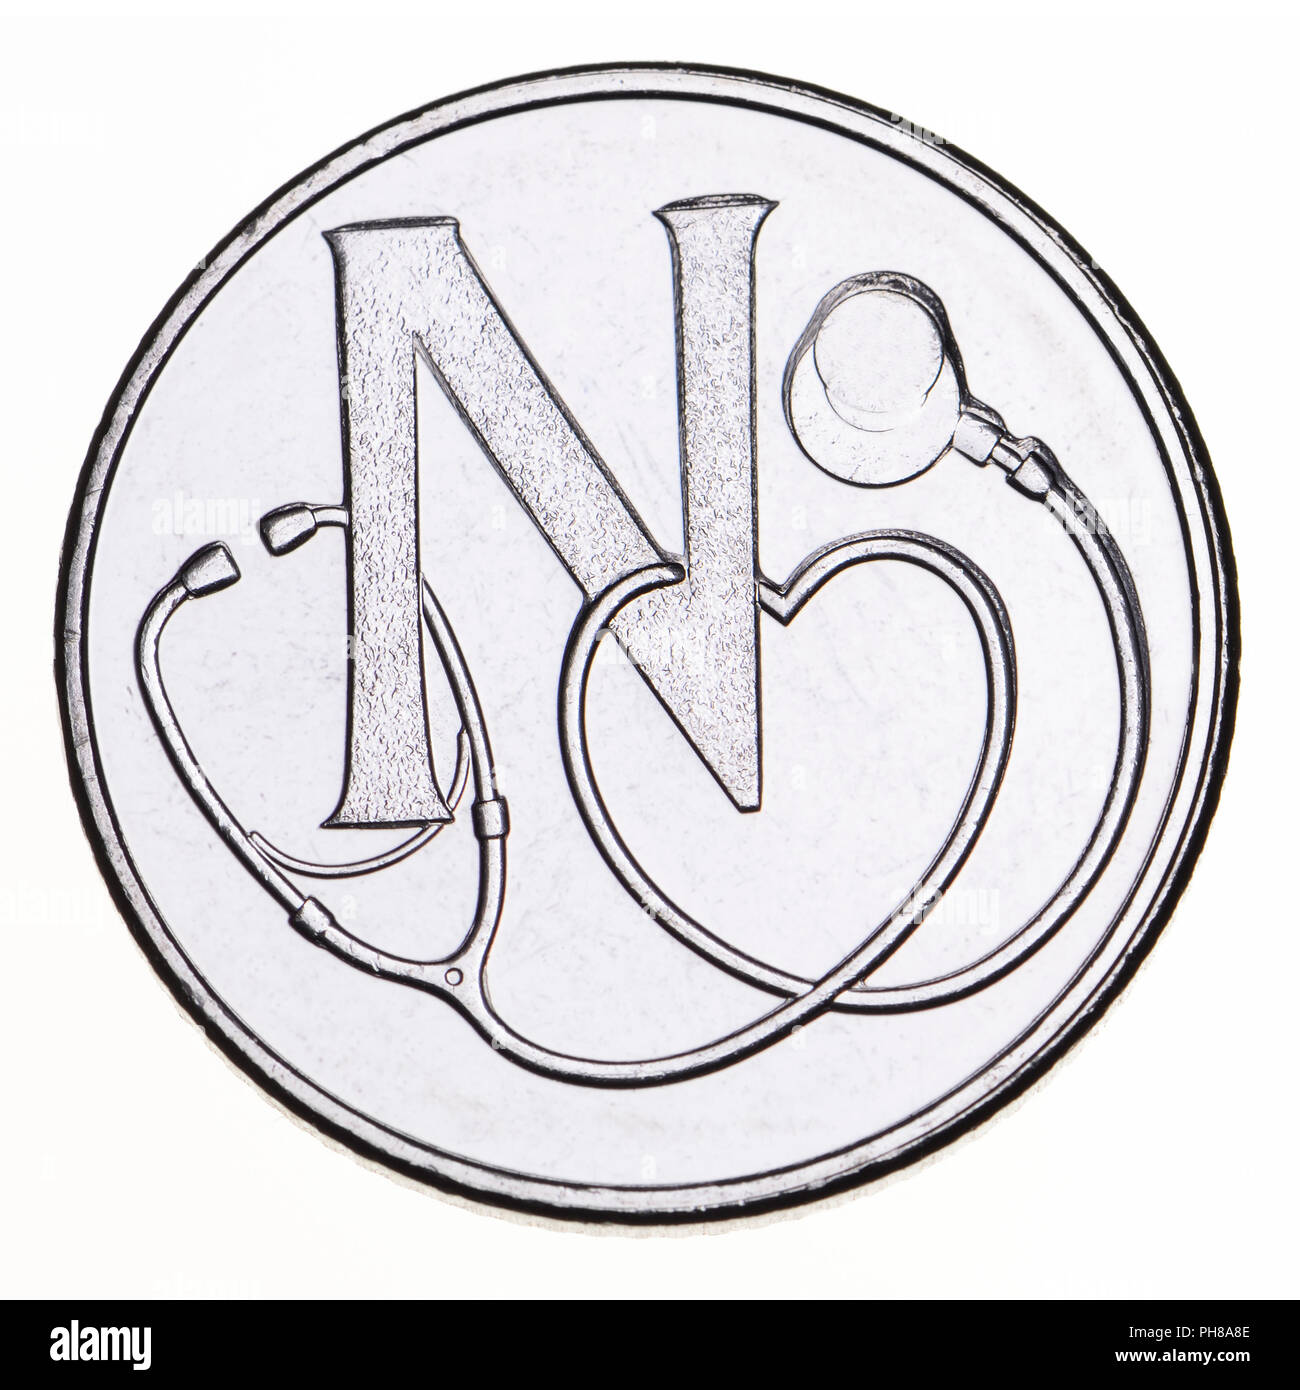 British 10p coin (reverse) from 2018 'Alphabet' series, celebrating Britishness. N - National Health Service - Stock Image